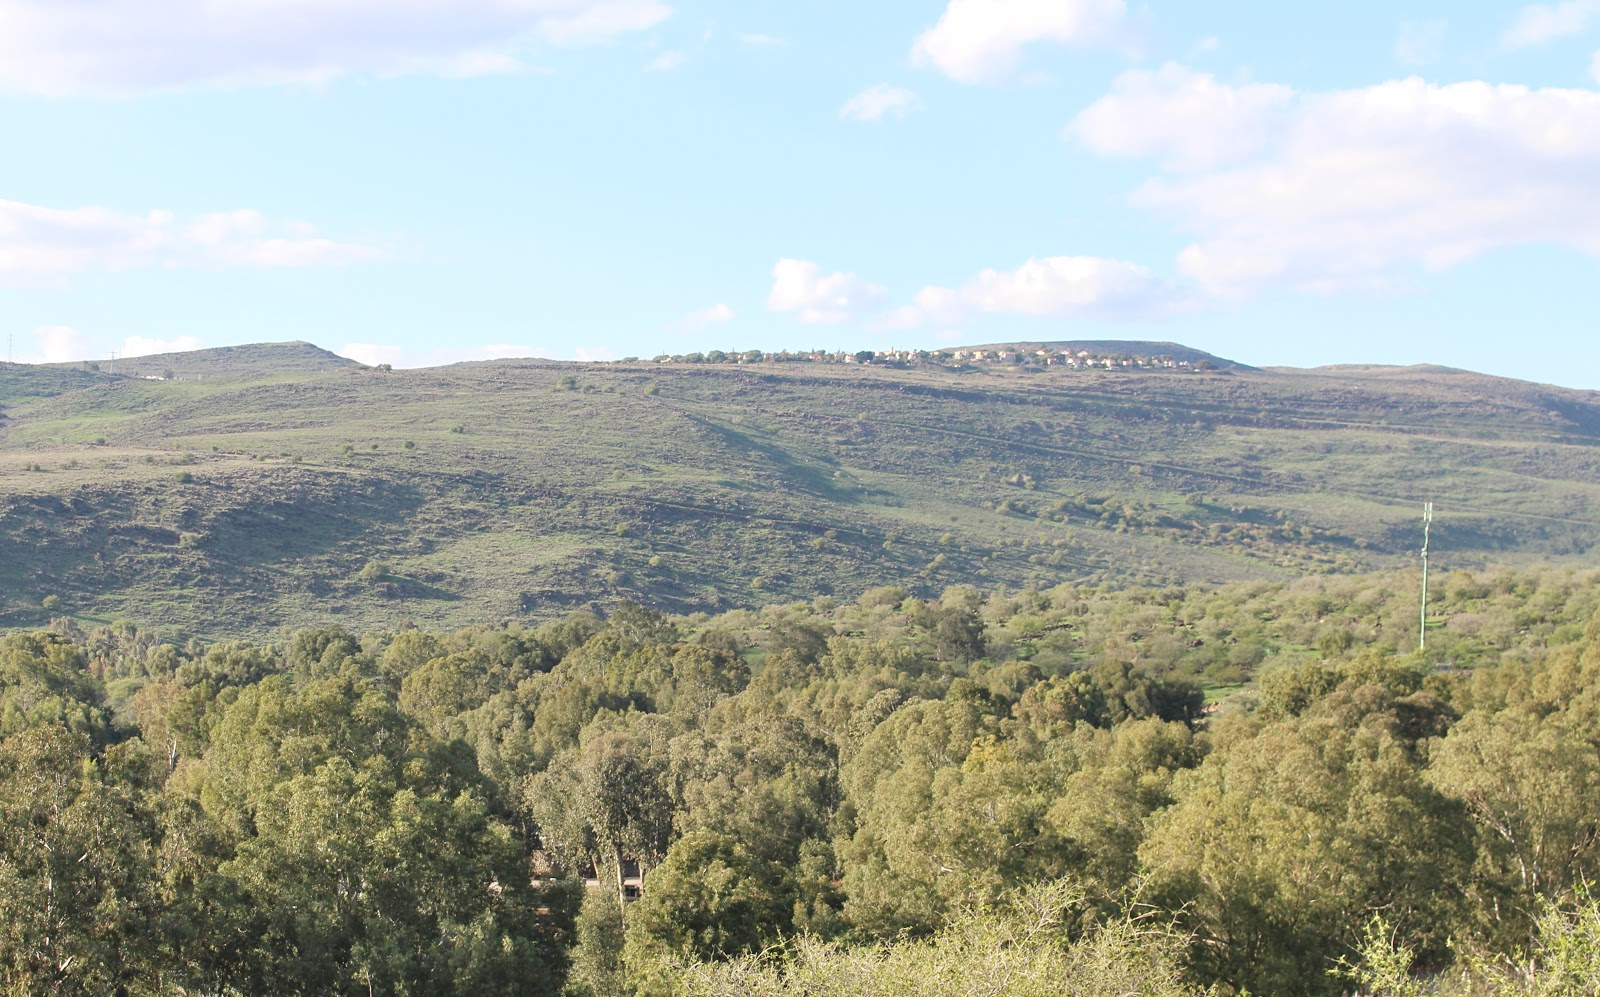 Bethsaida (Fisherman's House): Things To Do in Israel